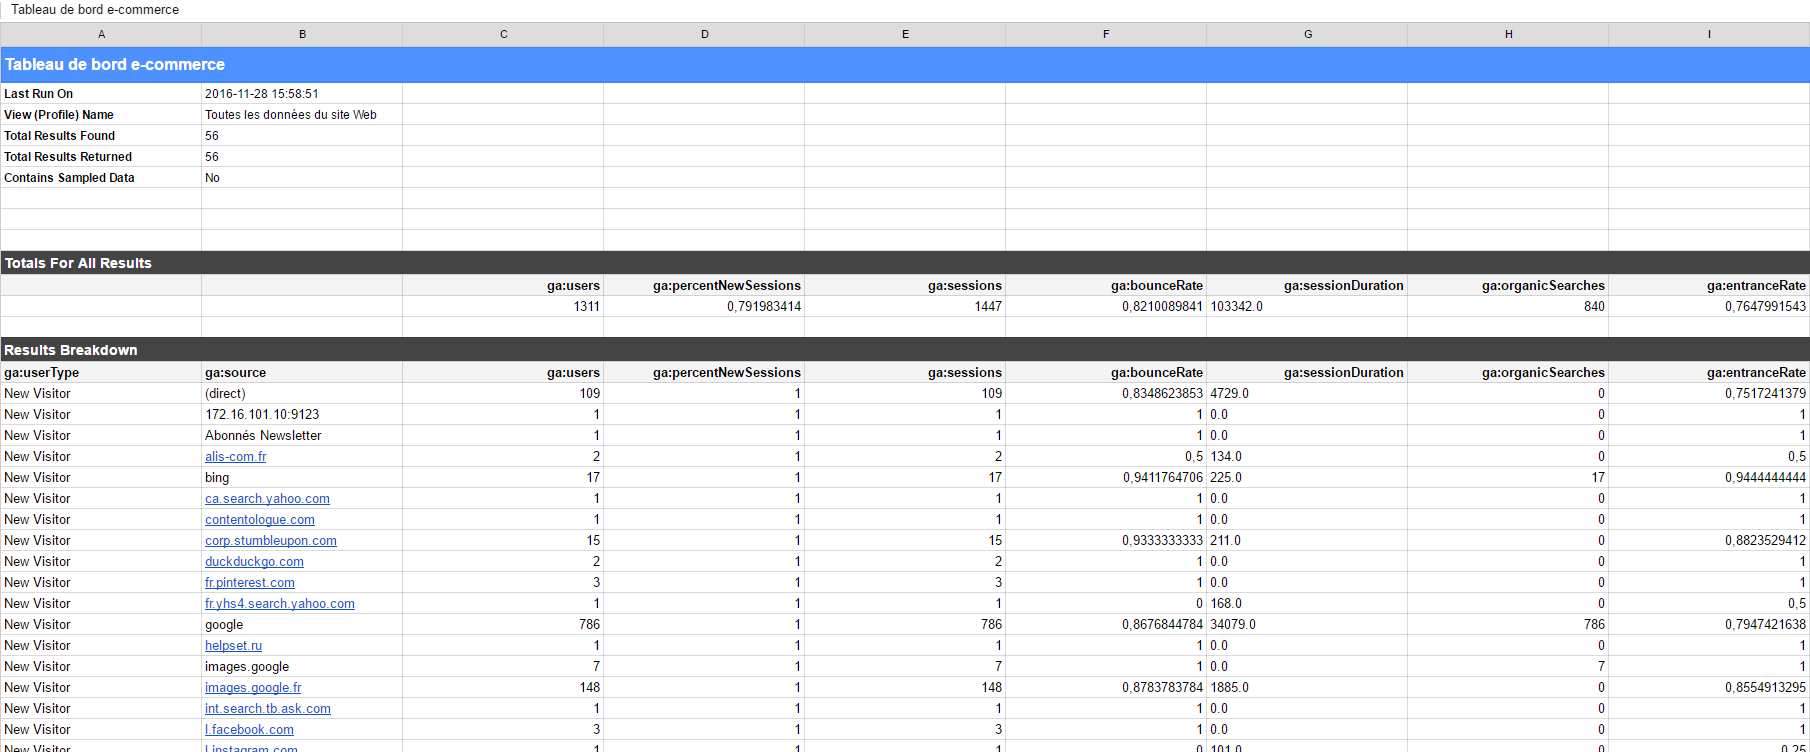 Tableau de bord e-commerce : aperçu du reporting de Google Analytics